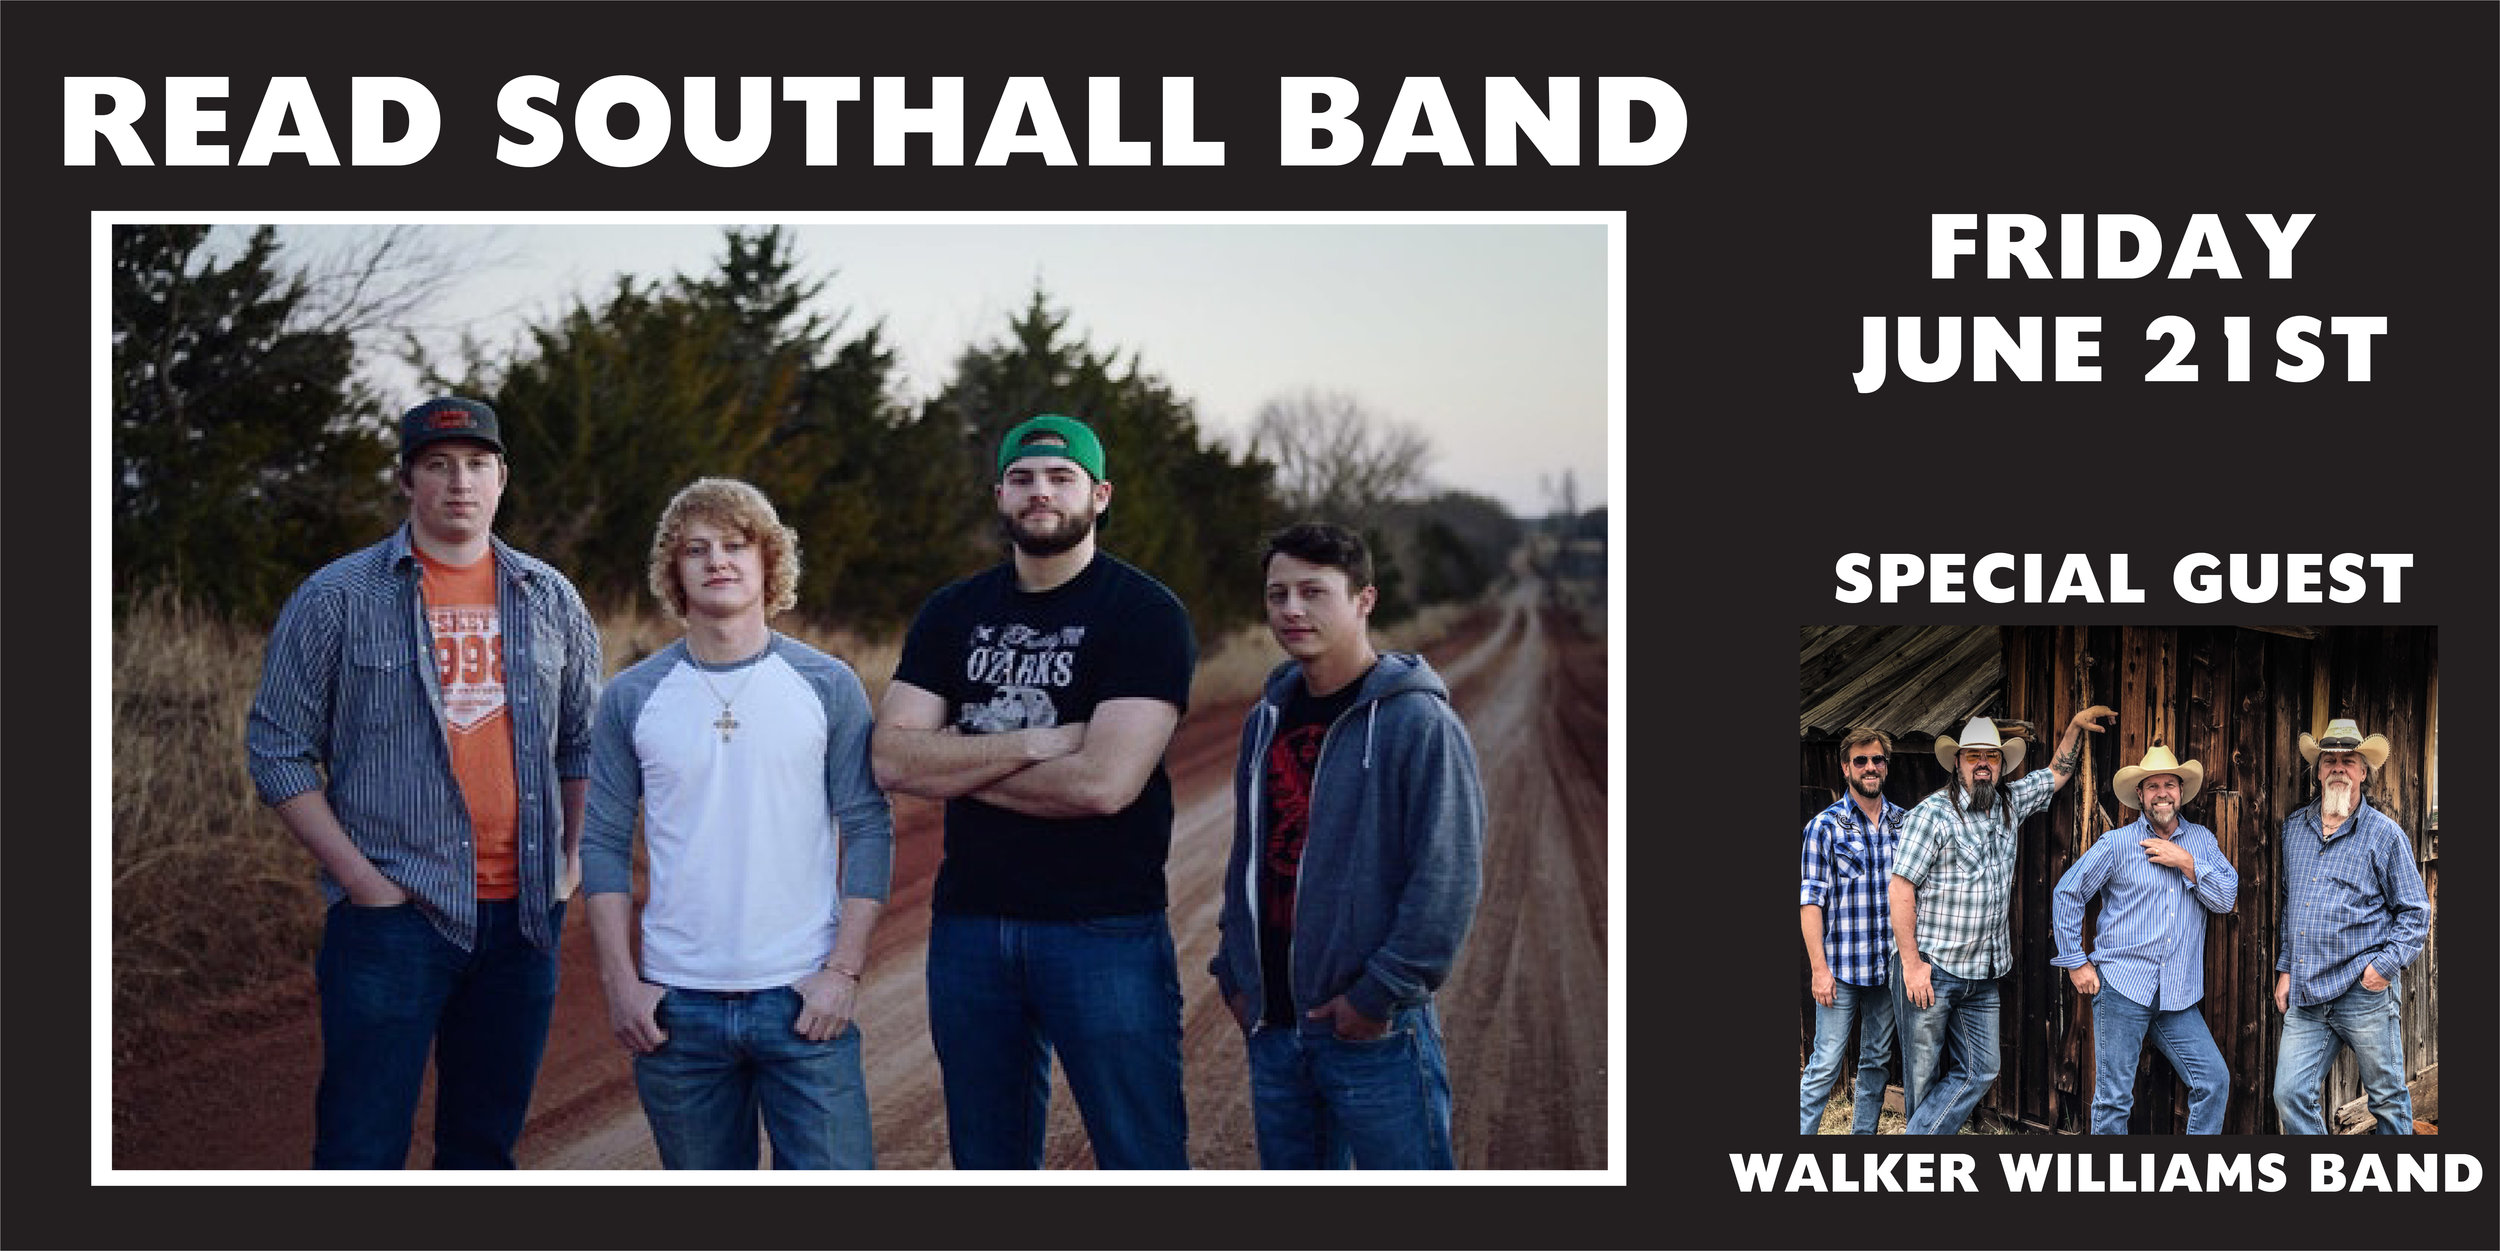 GJ are you ready for some good ol fashion Country Rock? The Read Southall Band will light up the RMEF big stage Friday June 21st! Come get yourself some Rockin RedDirt Country music in your life. Tickets on sale NOW